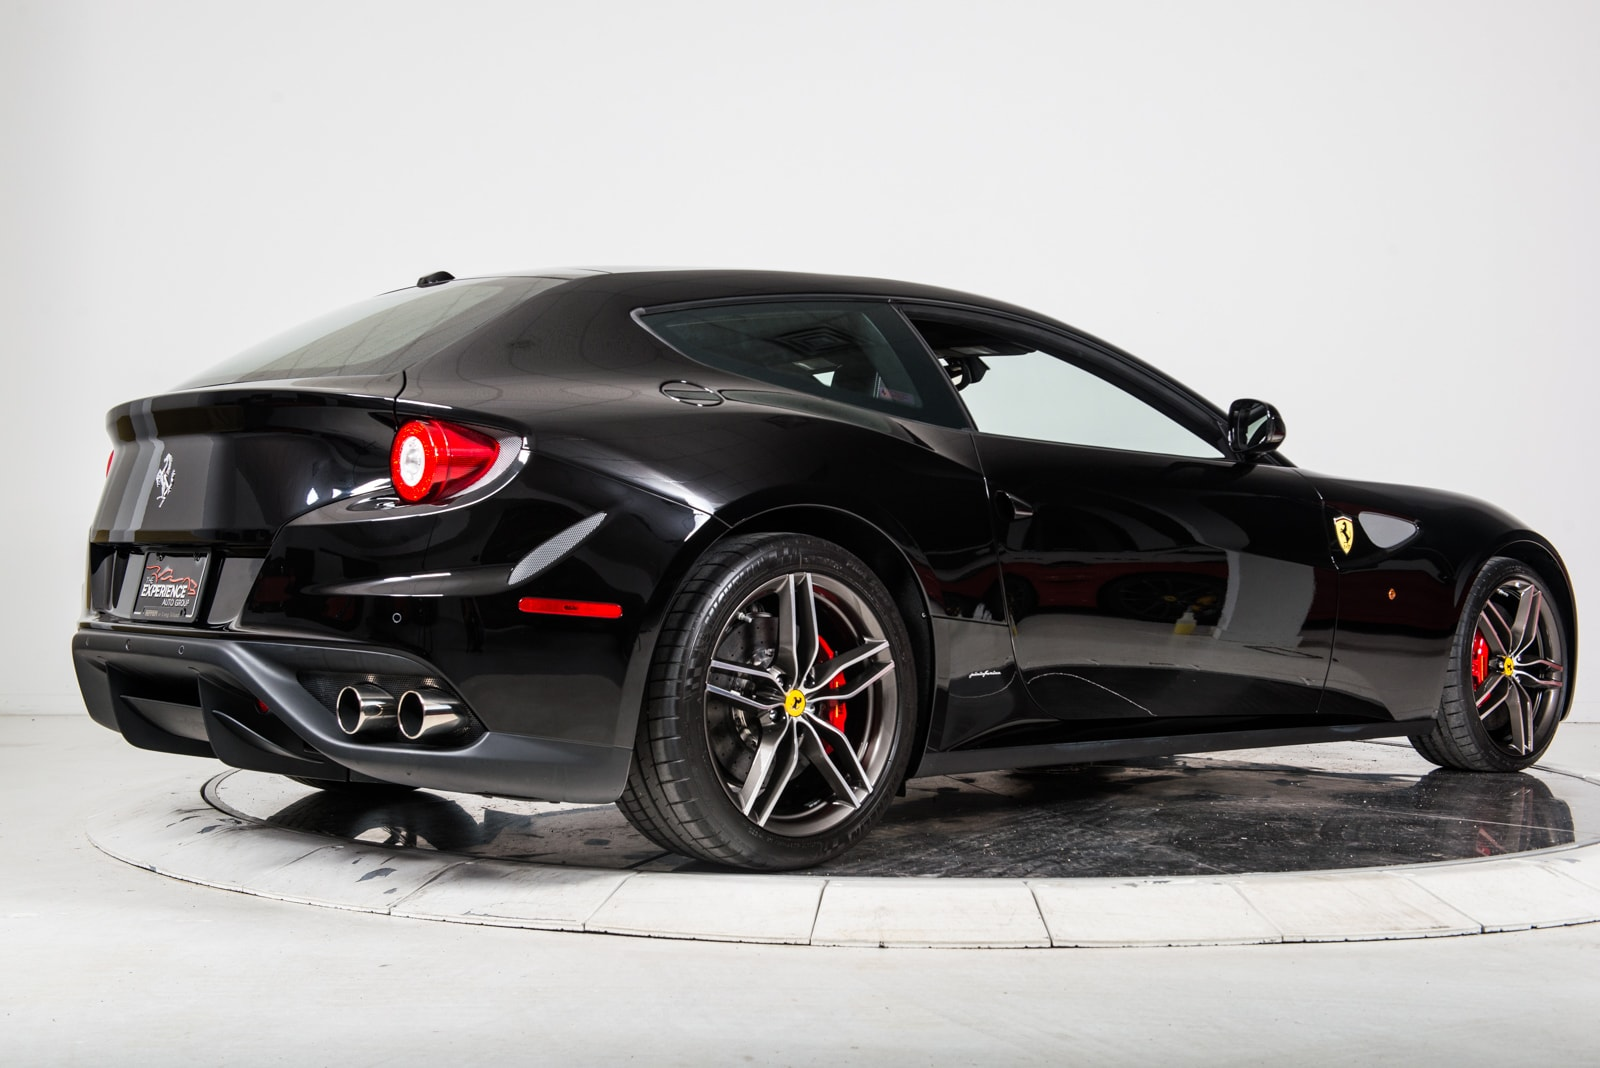 used 2016 ferrari ff for sale plainview ny near long island vin zff73ska0g0216479. Black Bedroom Furniture Sets. Home Design Ideas